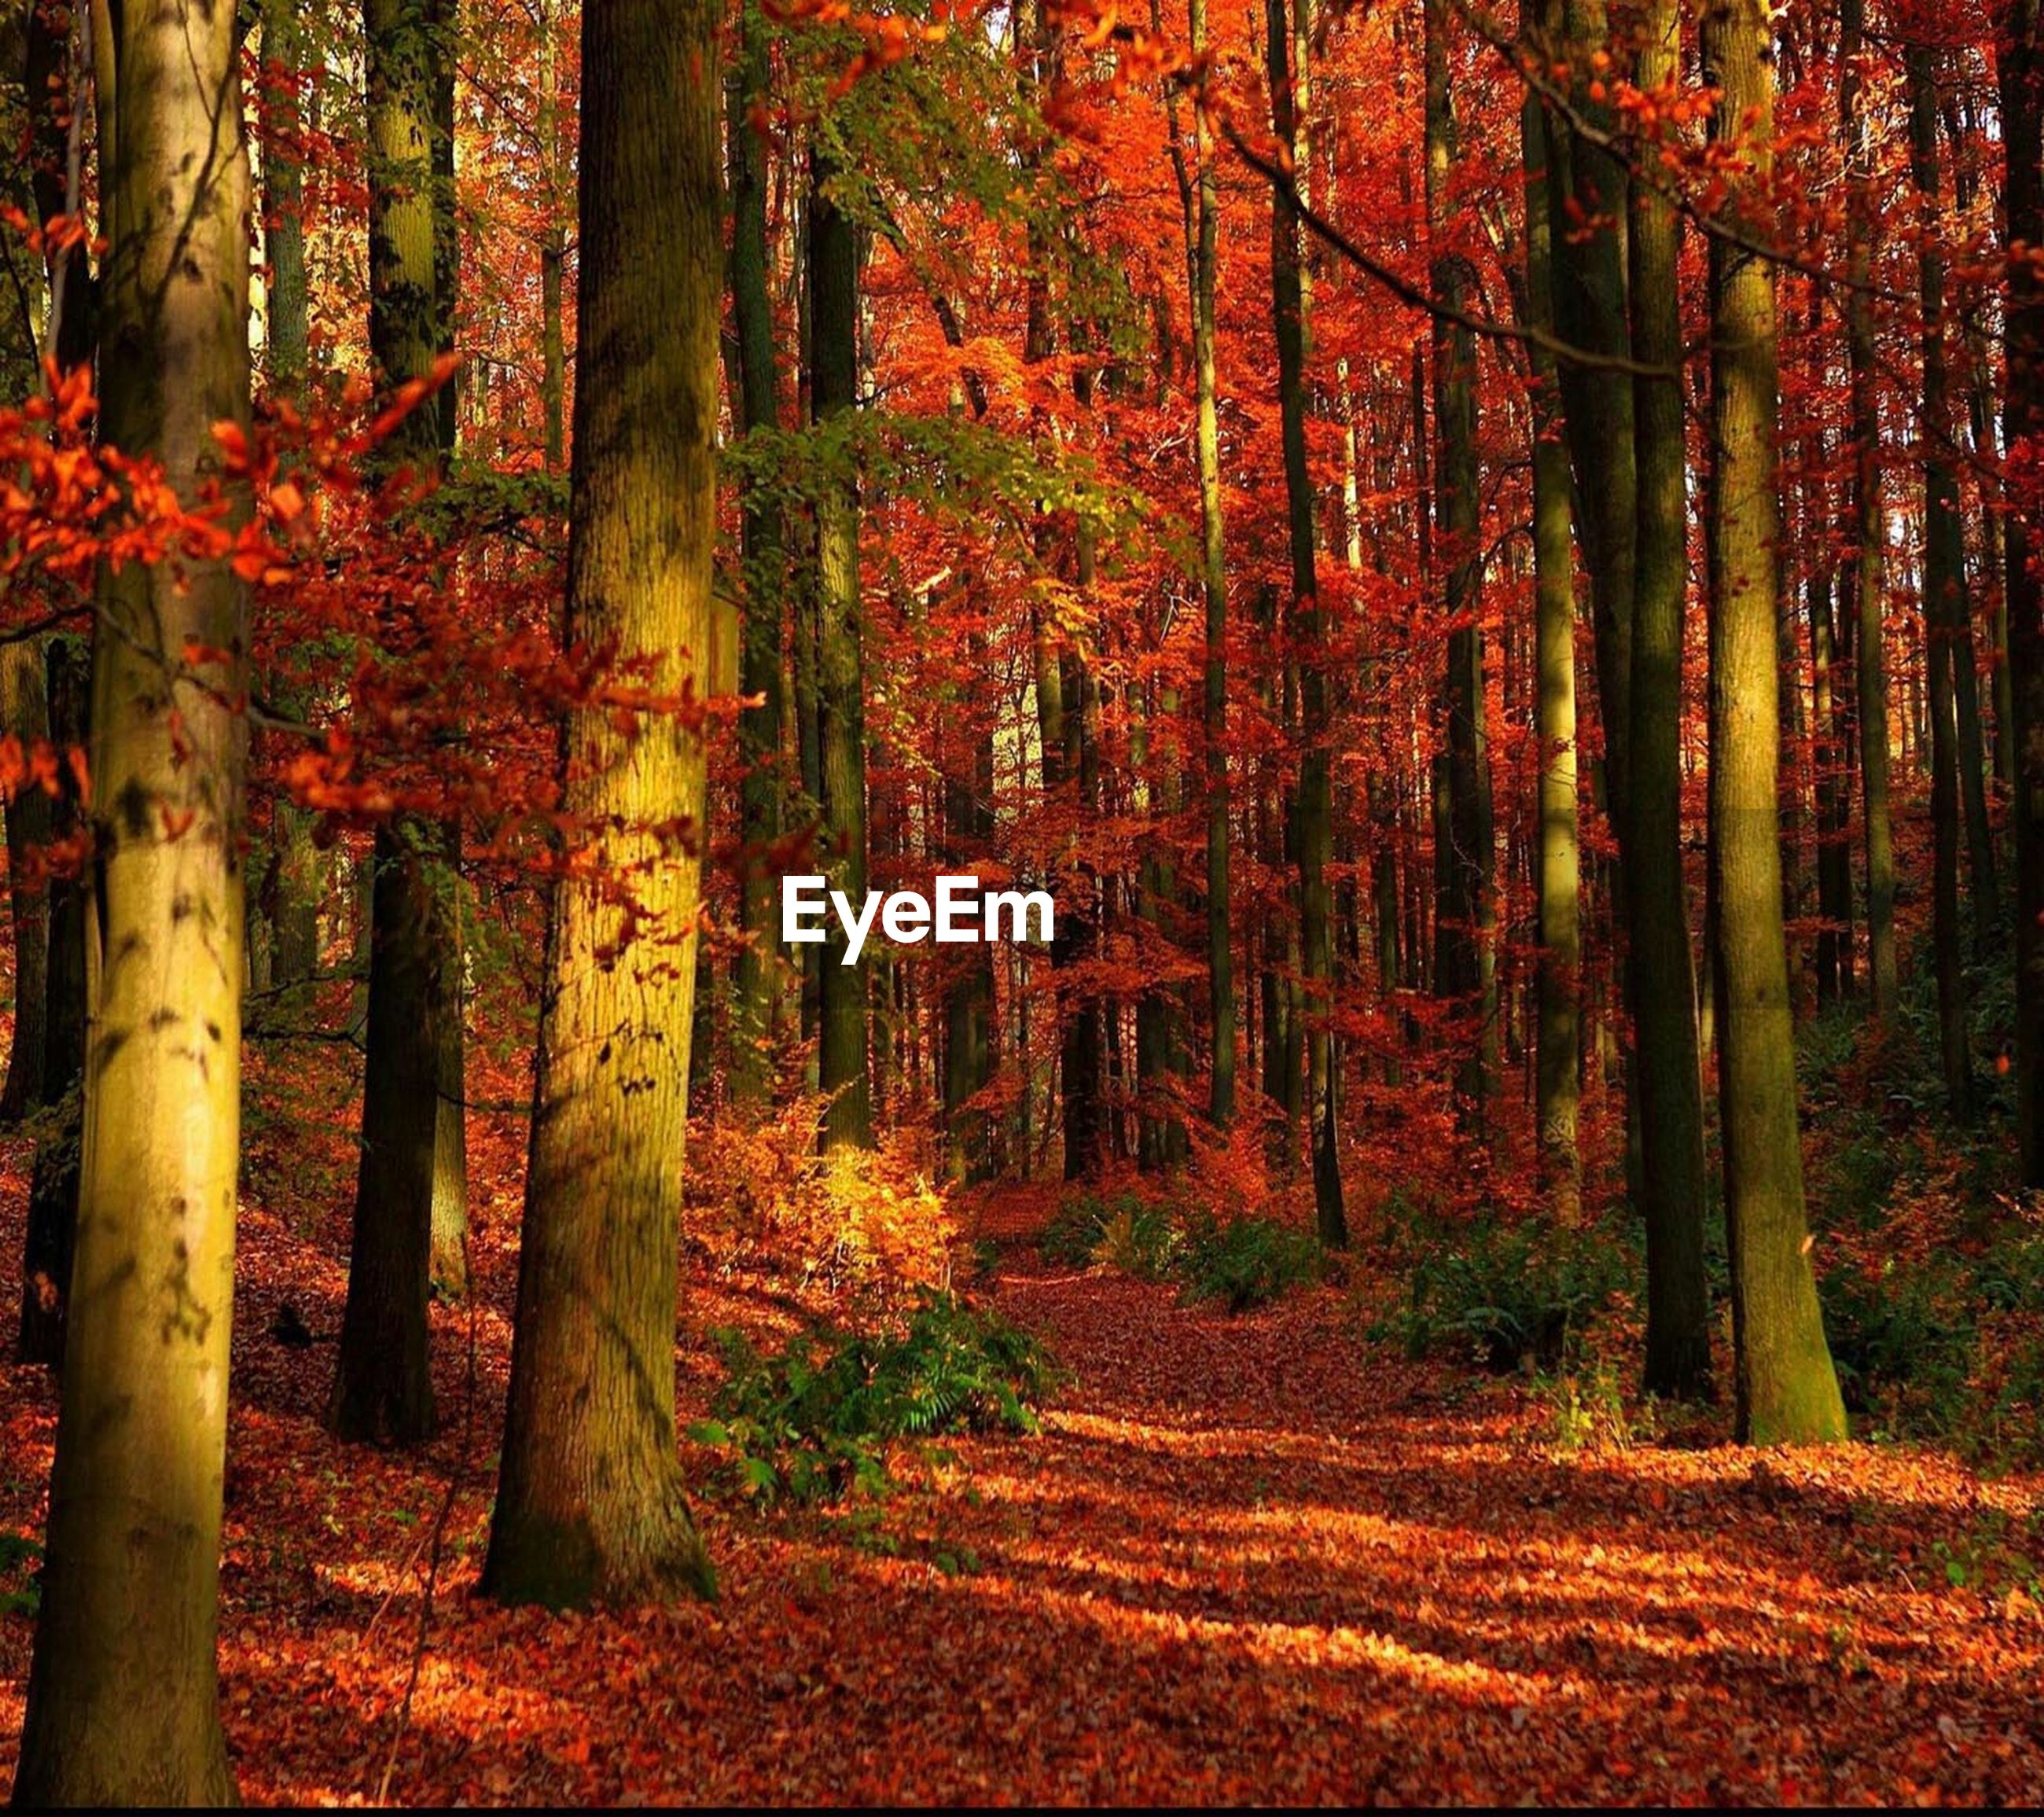 tree, tree trunk, autumn, forest, growth, woodland, tranquility, change, nature, orange color, beauty in nature, tranquil scene, season, red, branch, scenics, sunlight, outdoors, no people, landscape